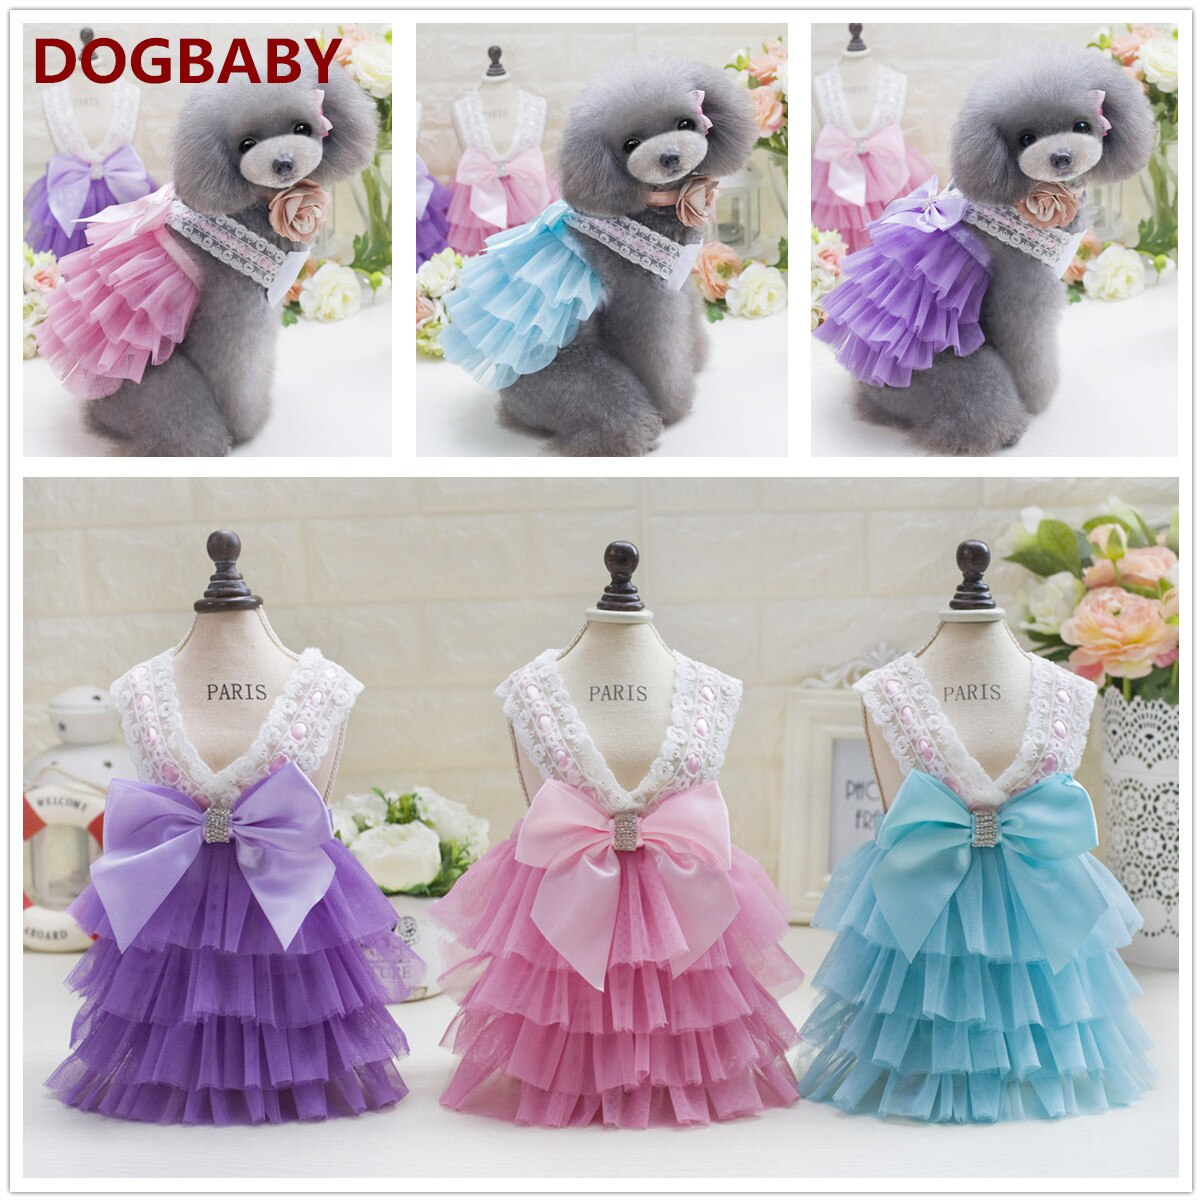 Summer Dog Lace Tullle Dress Chihuahua Wedding Party Dress Skirt Puppy Bowknot Spring Dresses Pet Clothes For Small Dog Costume